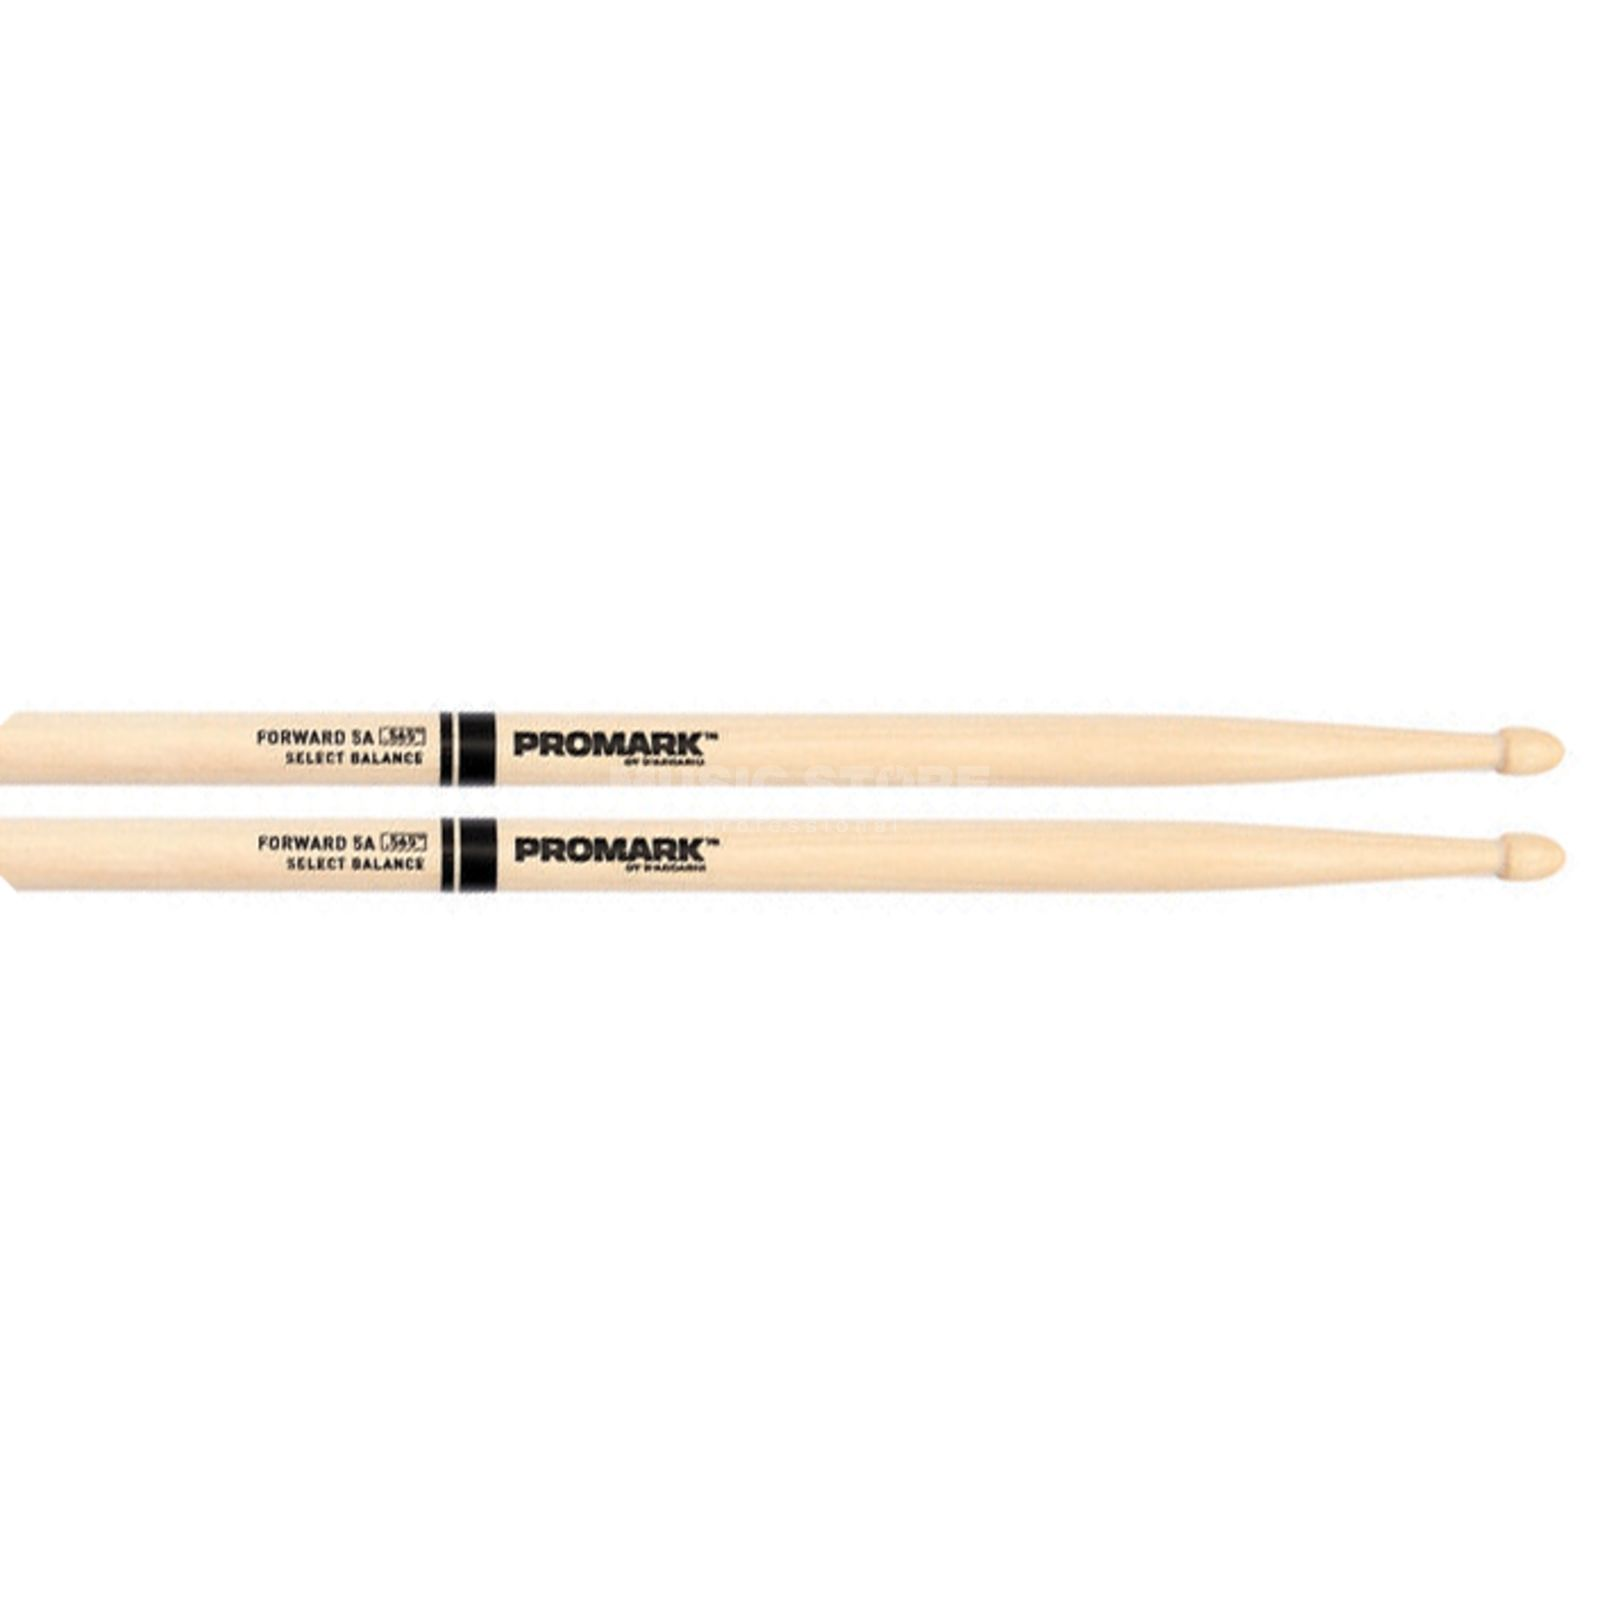 PRO-MARK Select Balance Sticks FBH565AW Forward Balance, Acorn Tip Image du produit